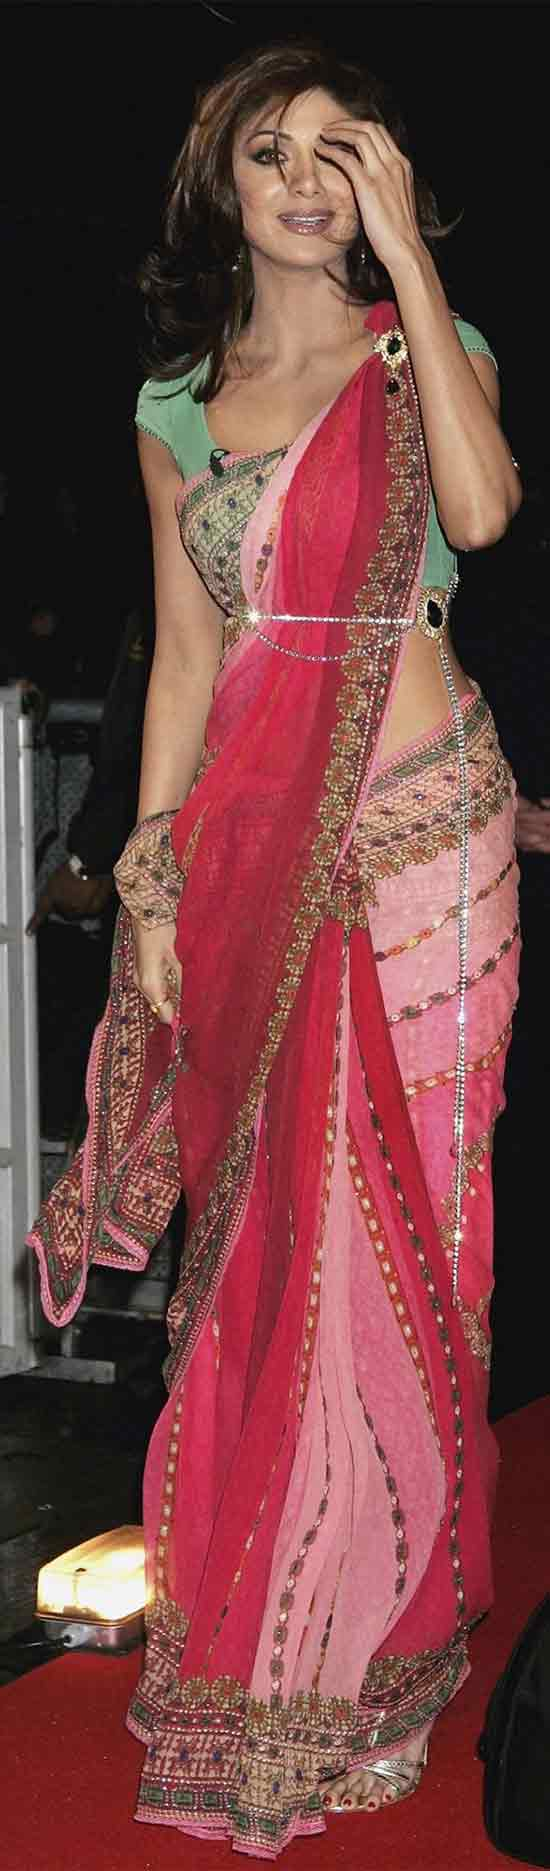 Shilpa-Shetty-In-Designer-Saree